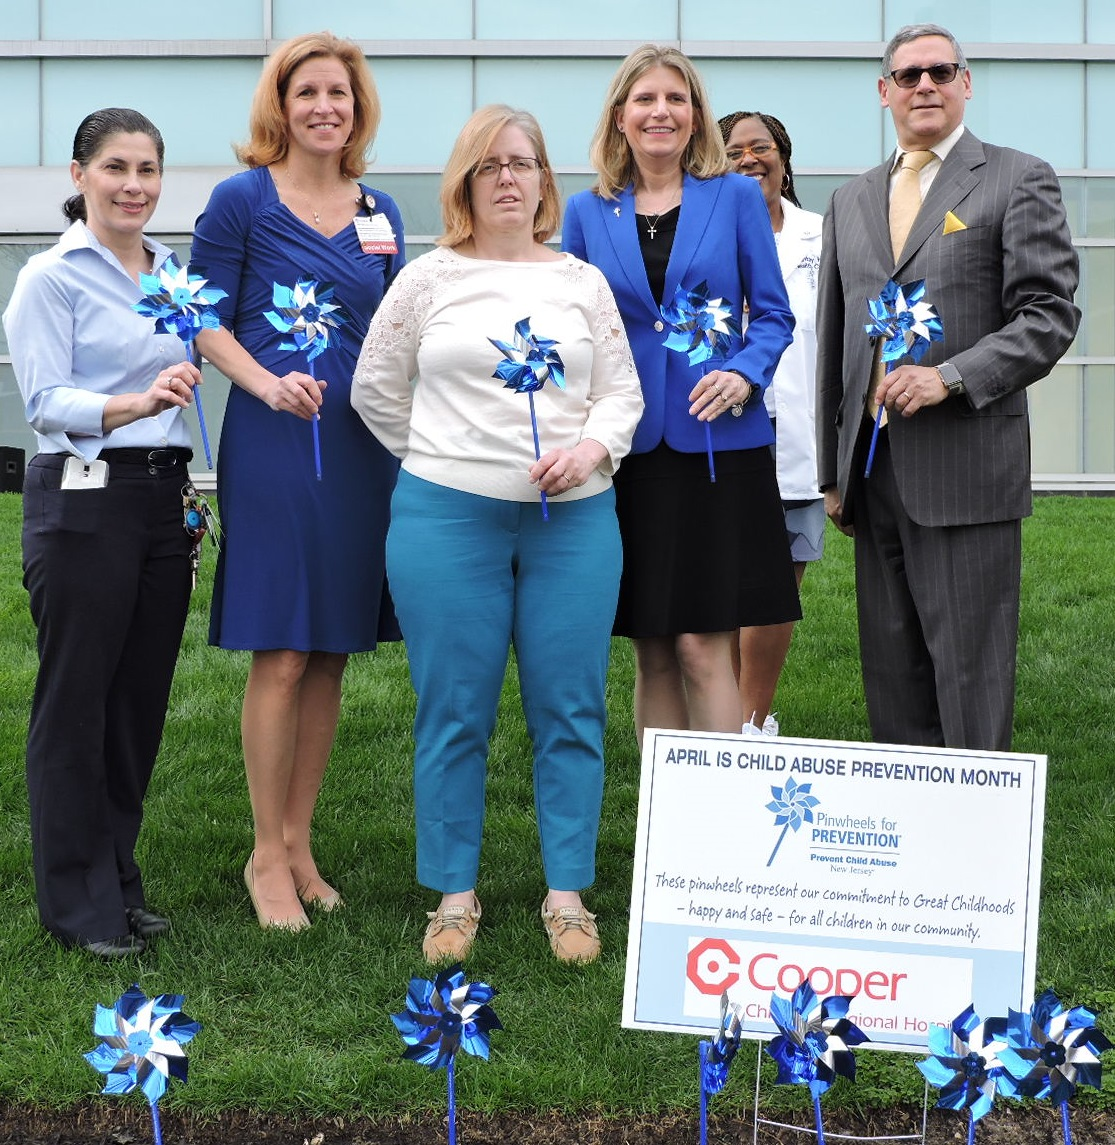 Pinwheels for Prevention group photo at Cooper